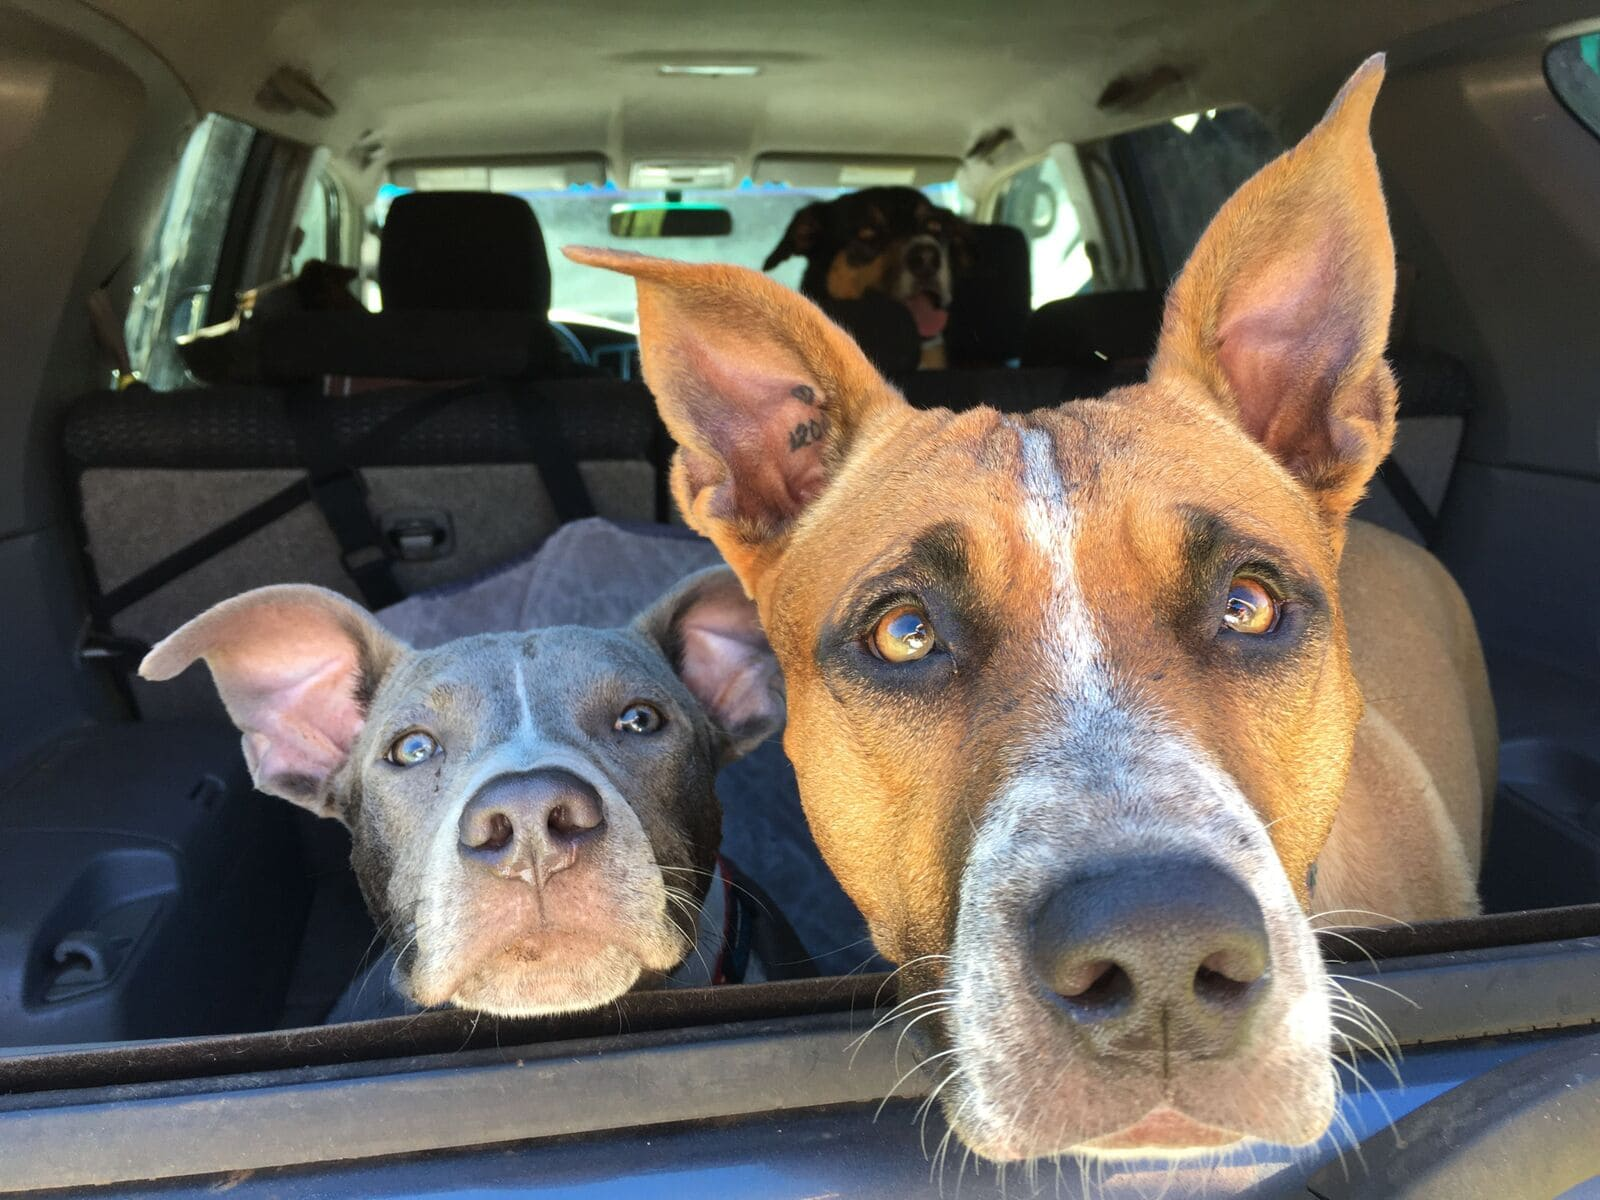 2 dongs with their heads out the window of a car with a 3rd dog looking from the back seat